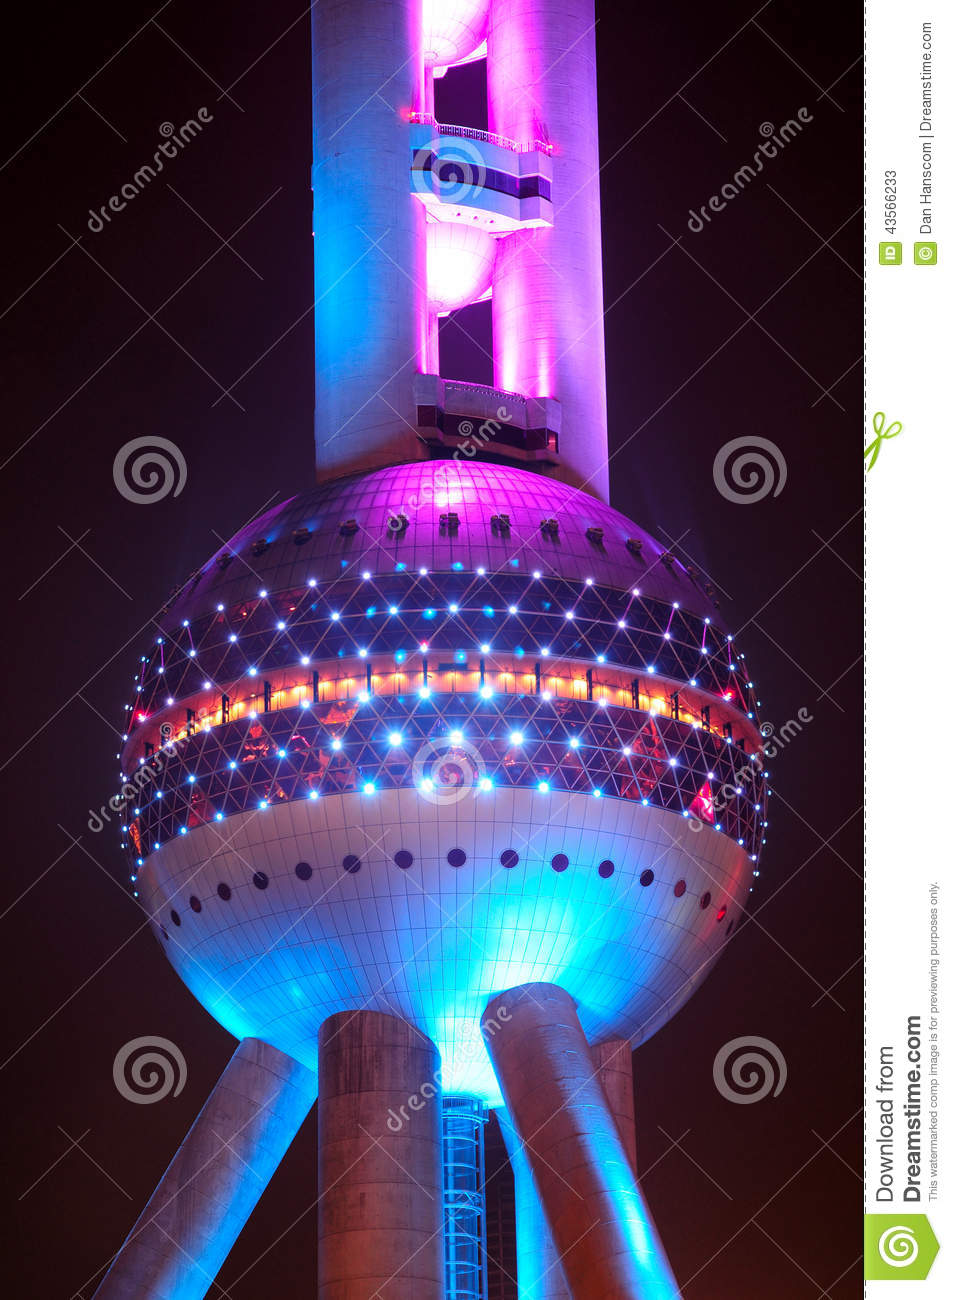 The Pearl Tower